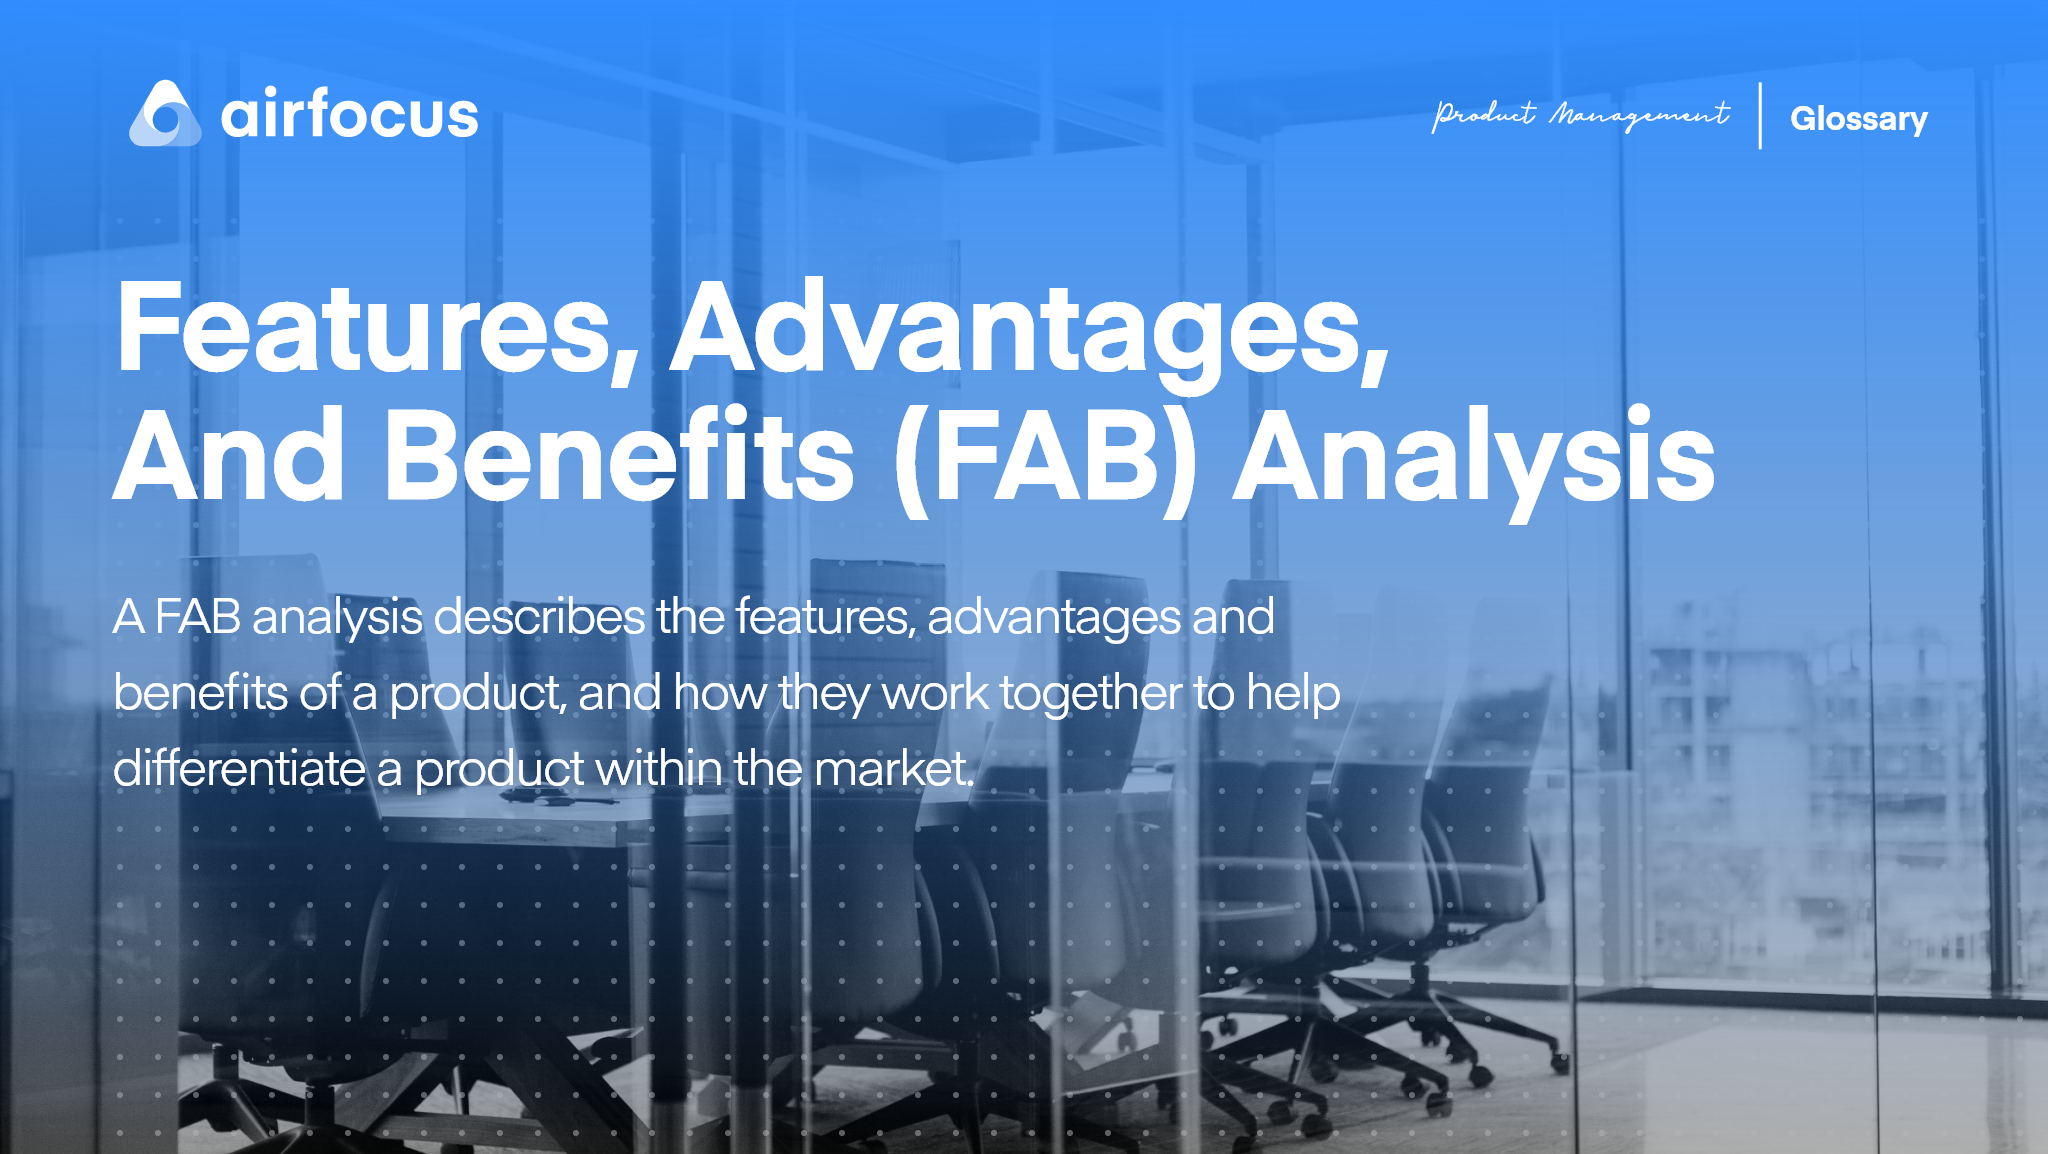 What is a 'Features, Advantages and Benefits' (FAB) analysis